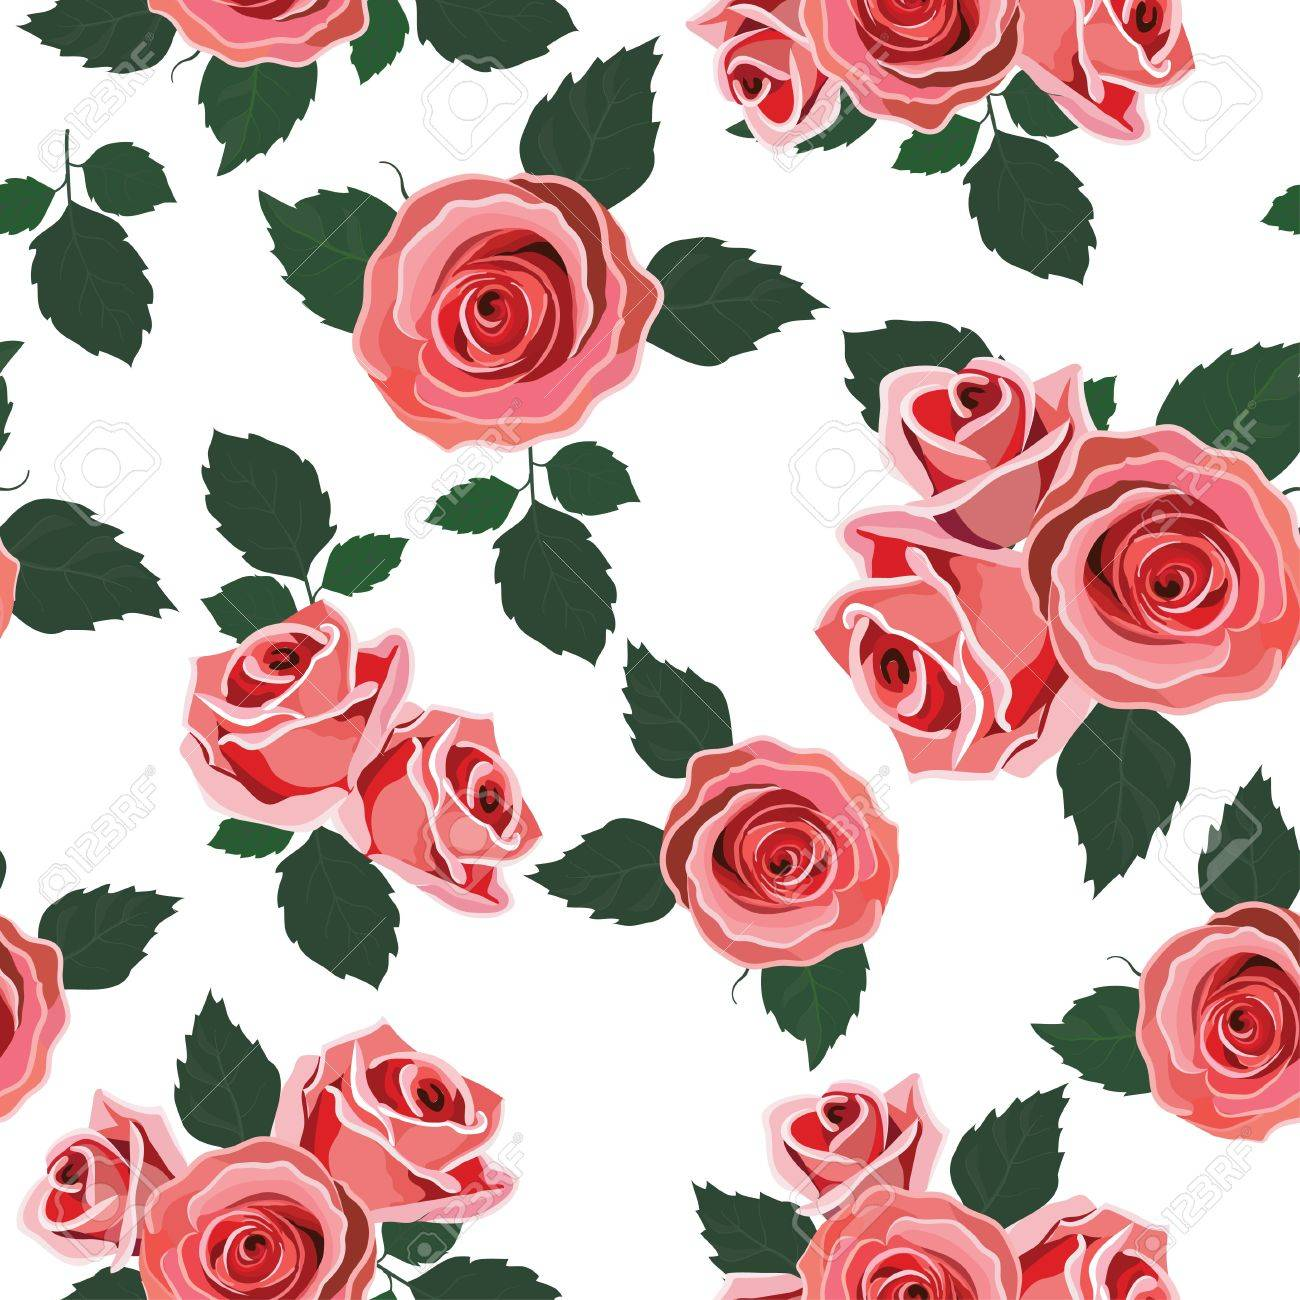 Retro Wallpaper With Roses Stock Vector